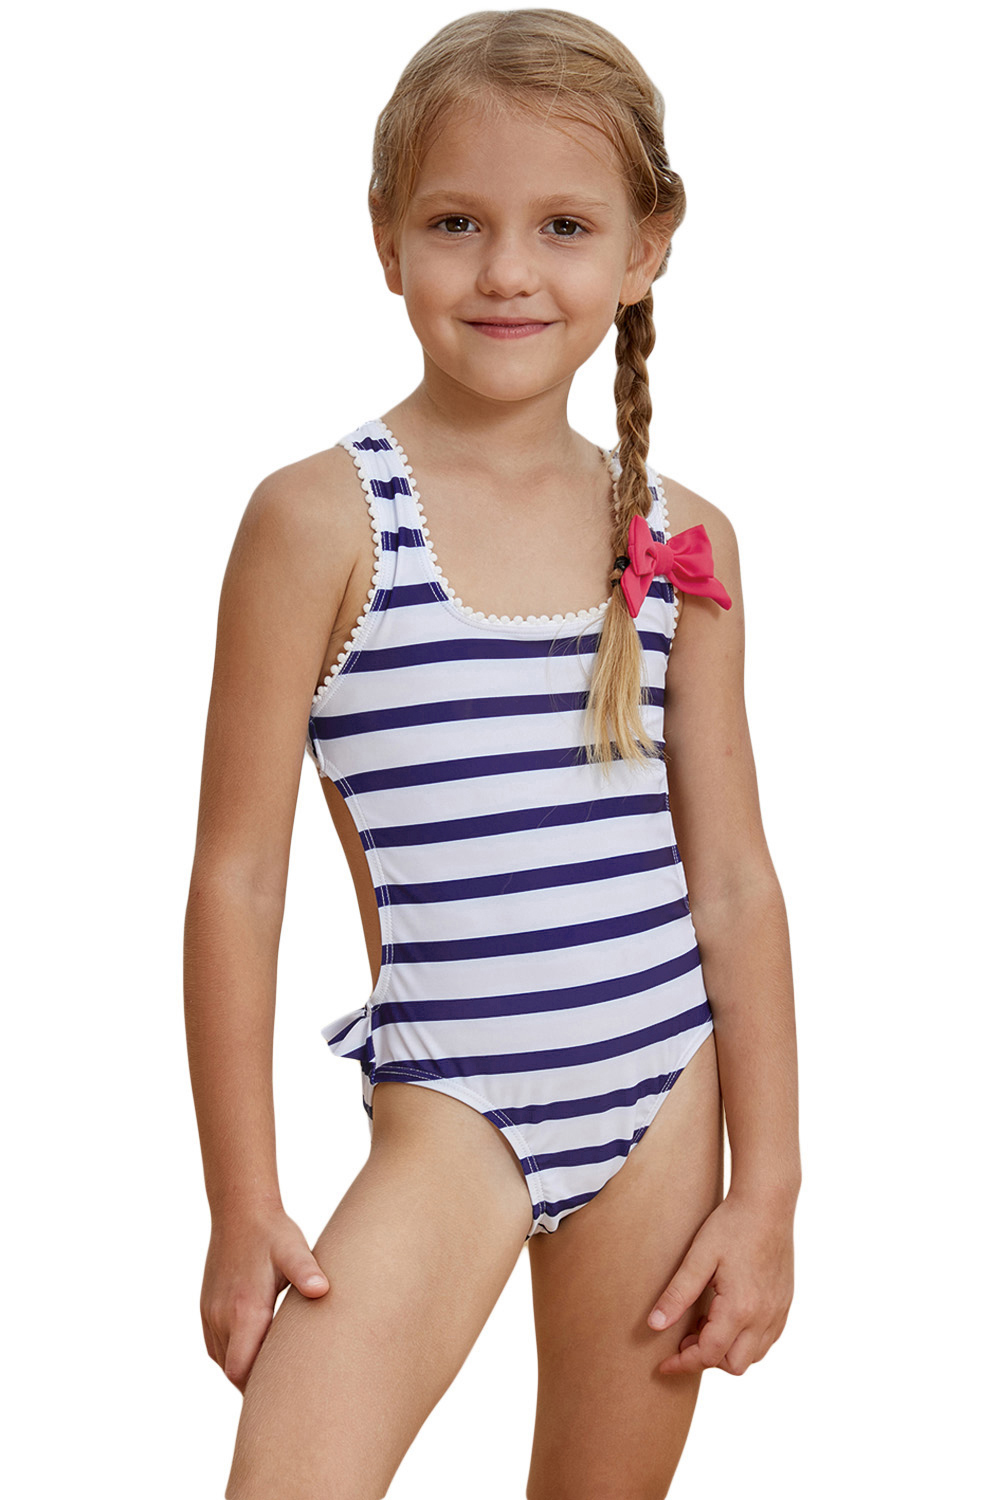 Wholesale Girls Swimsuits Cheap Navy Blue Striped Cross